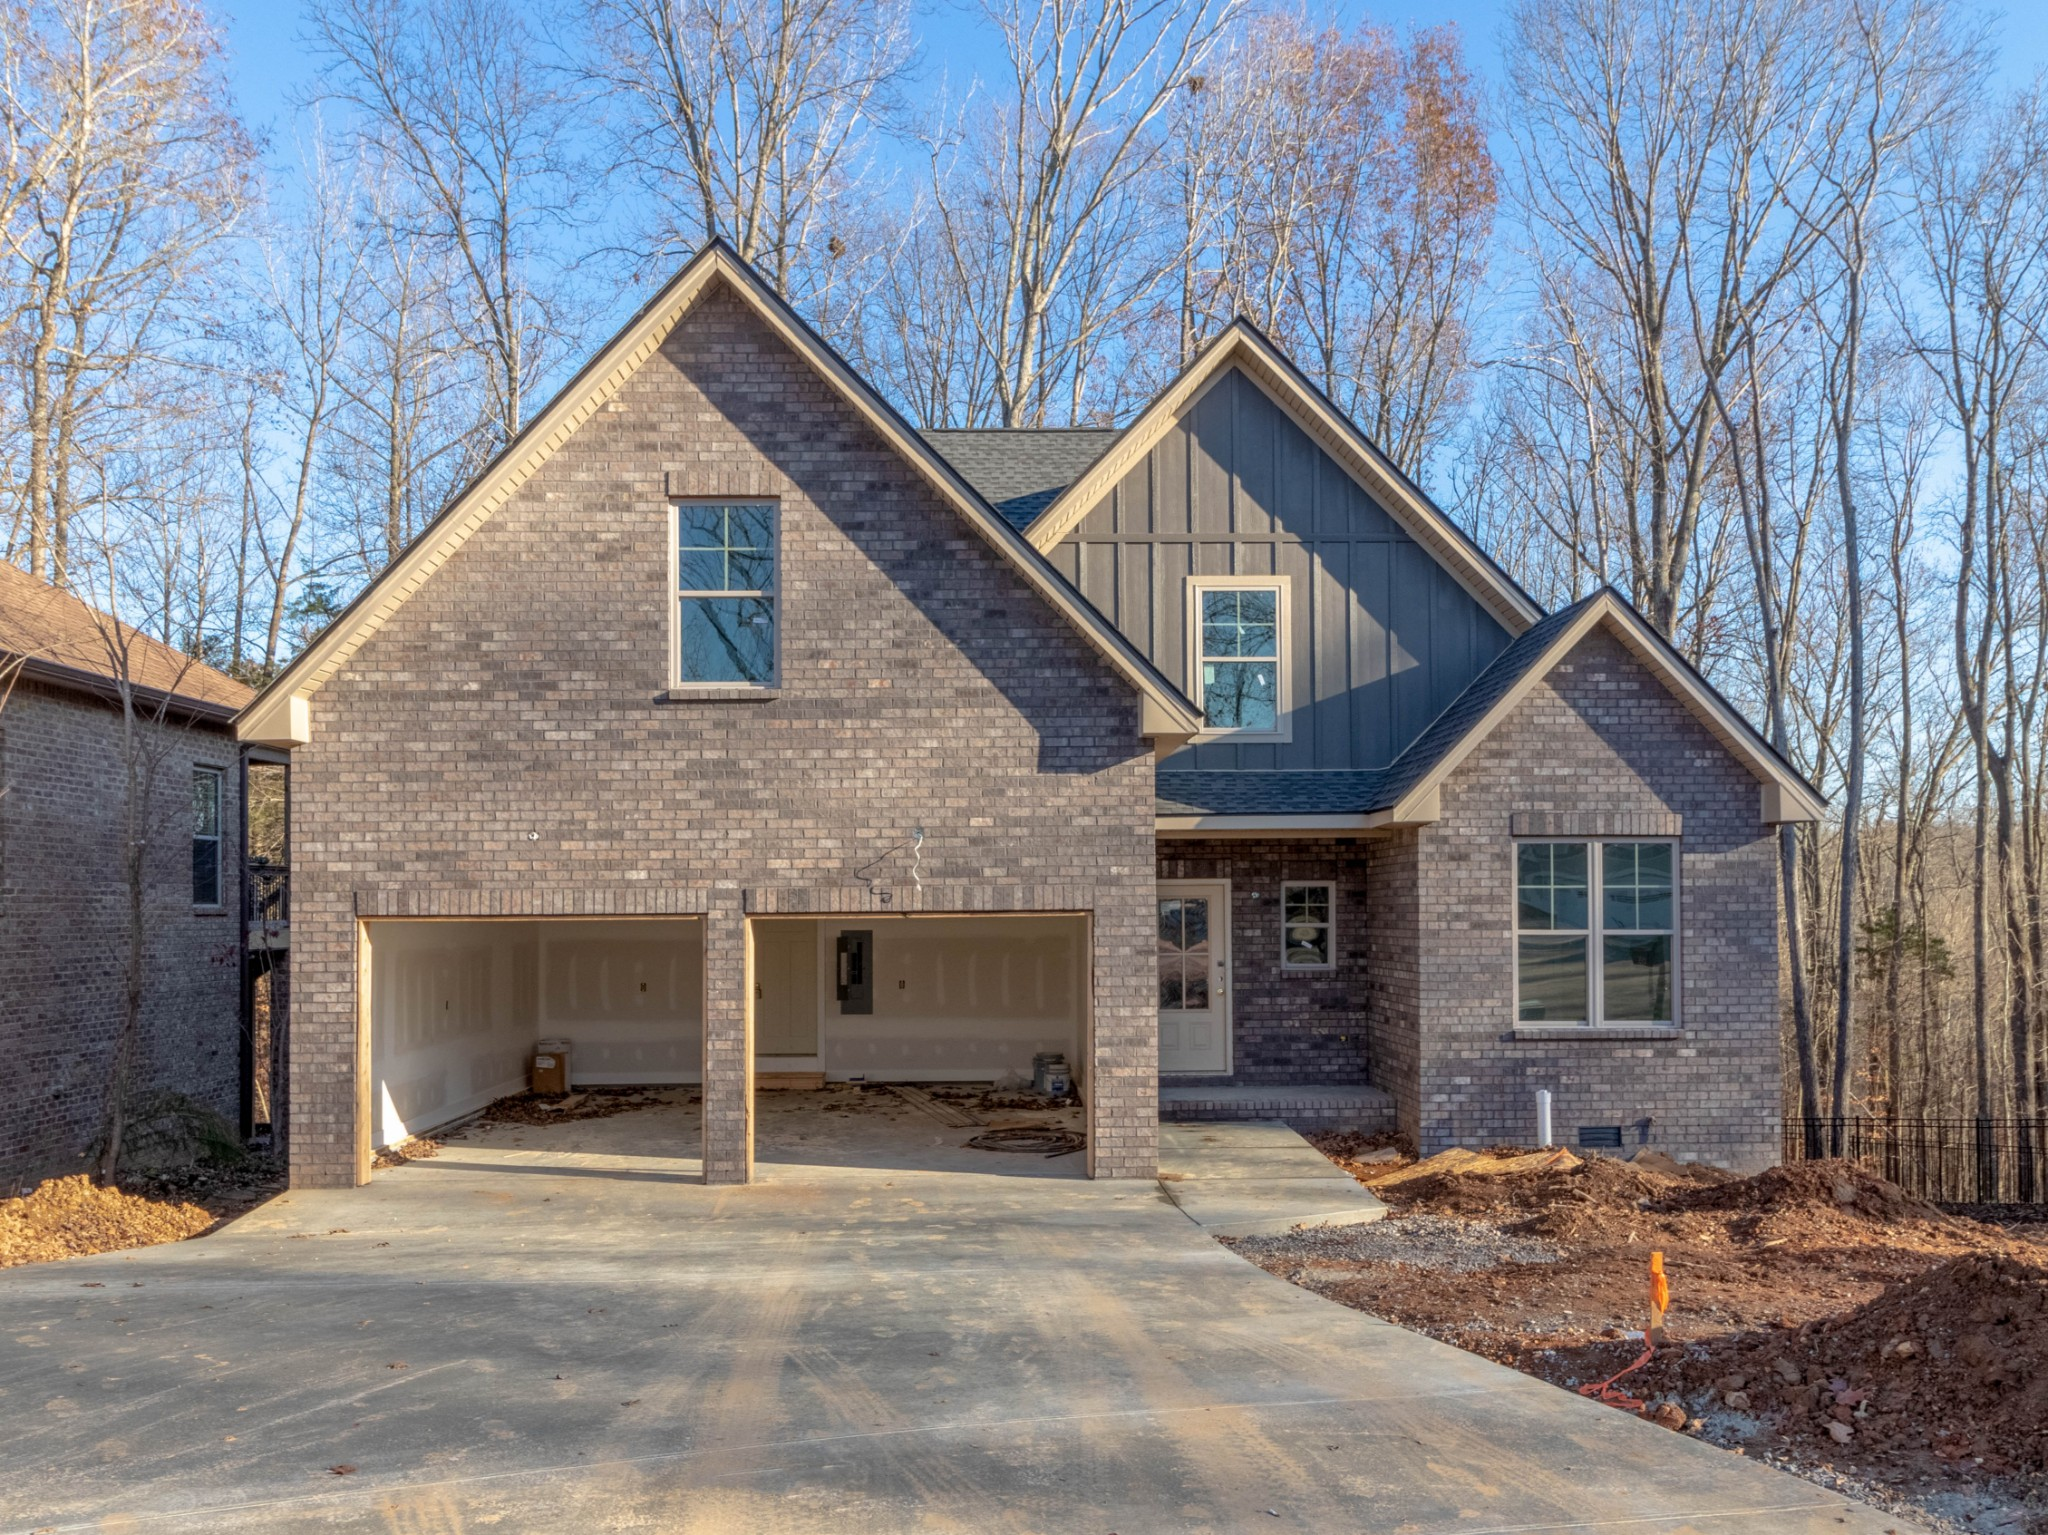 249 Birnam Wood Trce Property Photo - Clarksville, TN real estate listing